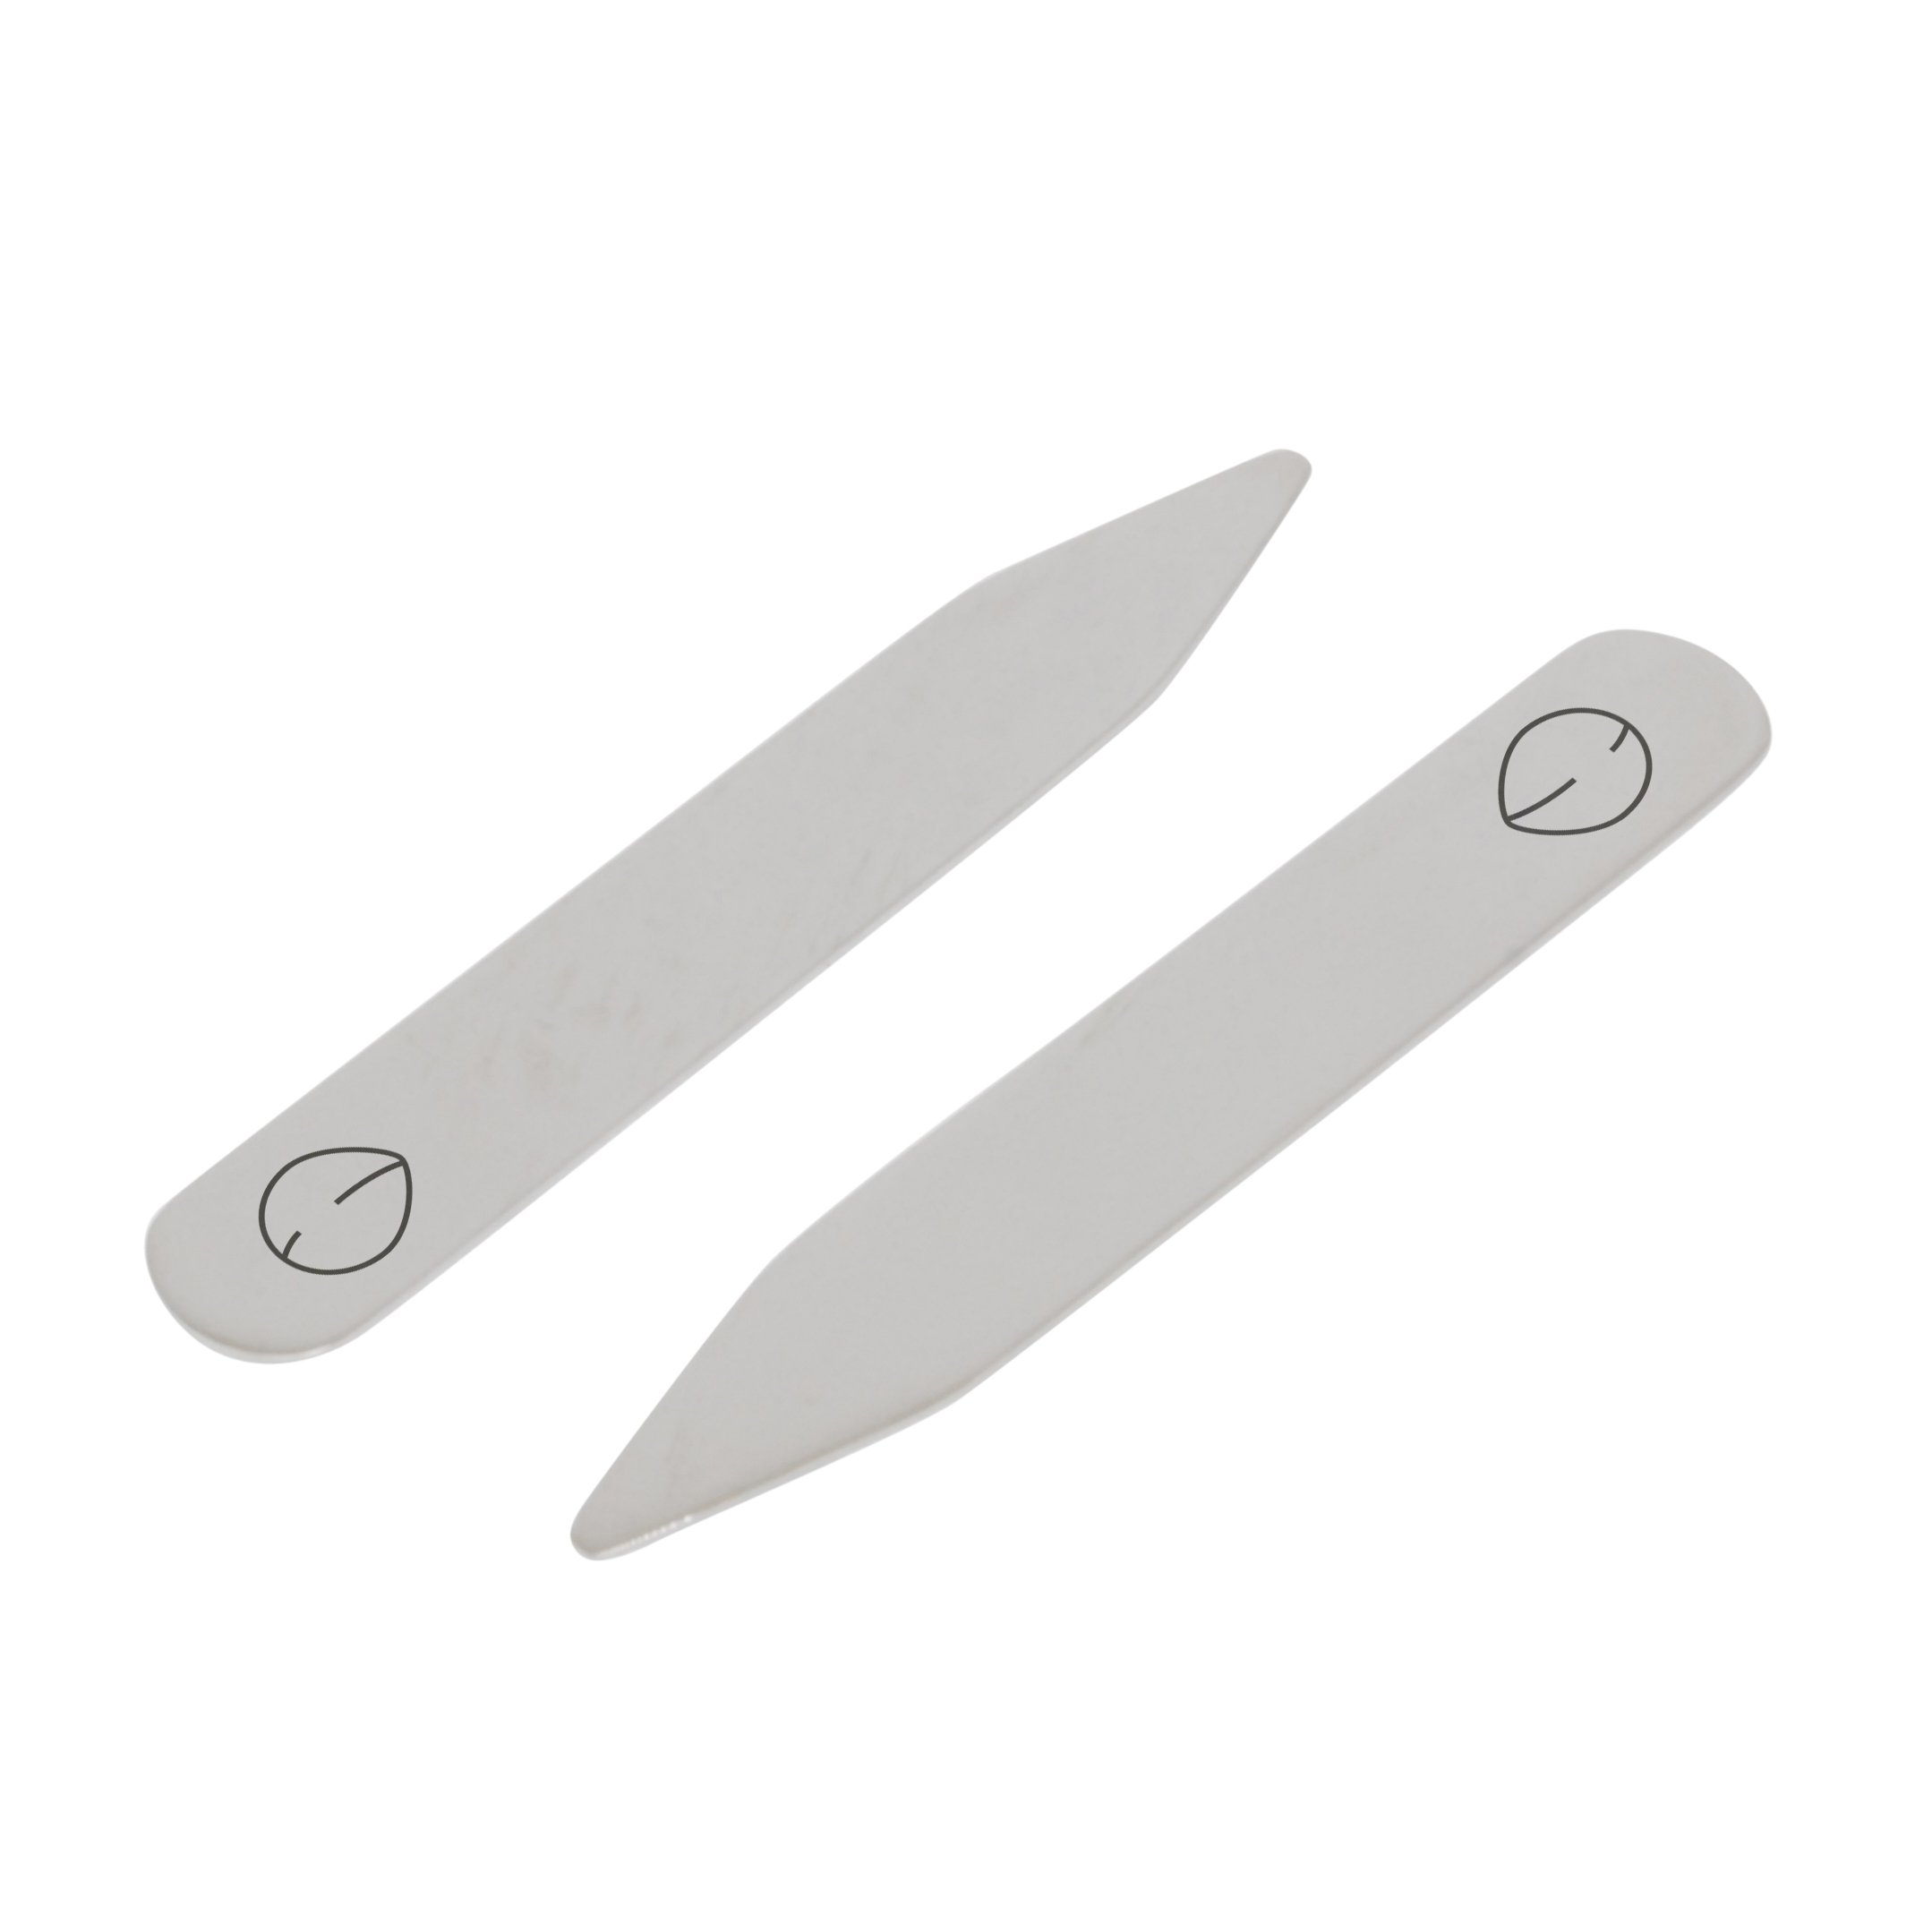 MODERN GOODS SHOP Stainless Steel Collar Stays With Laser Engraved Seed Design - 2.5 Inch Metal Collar Stiffeners - Made In USA